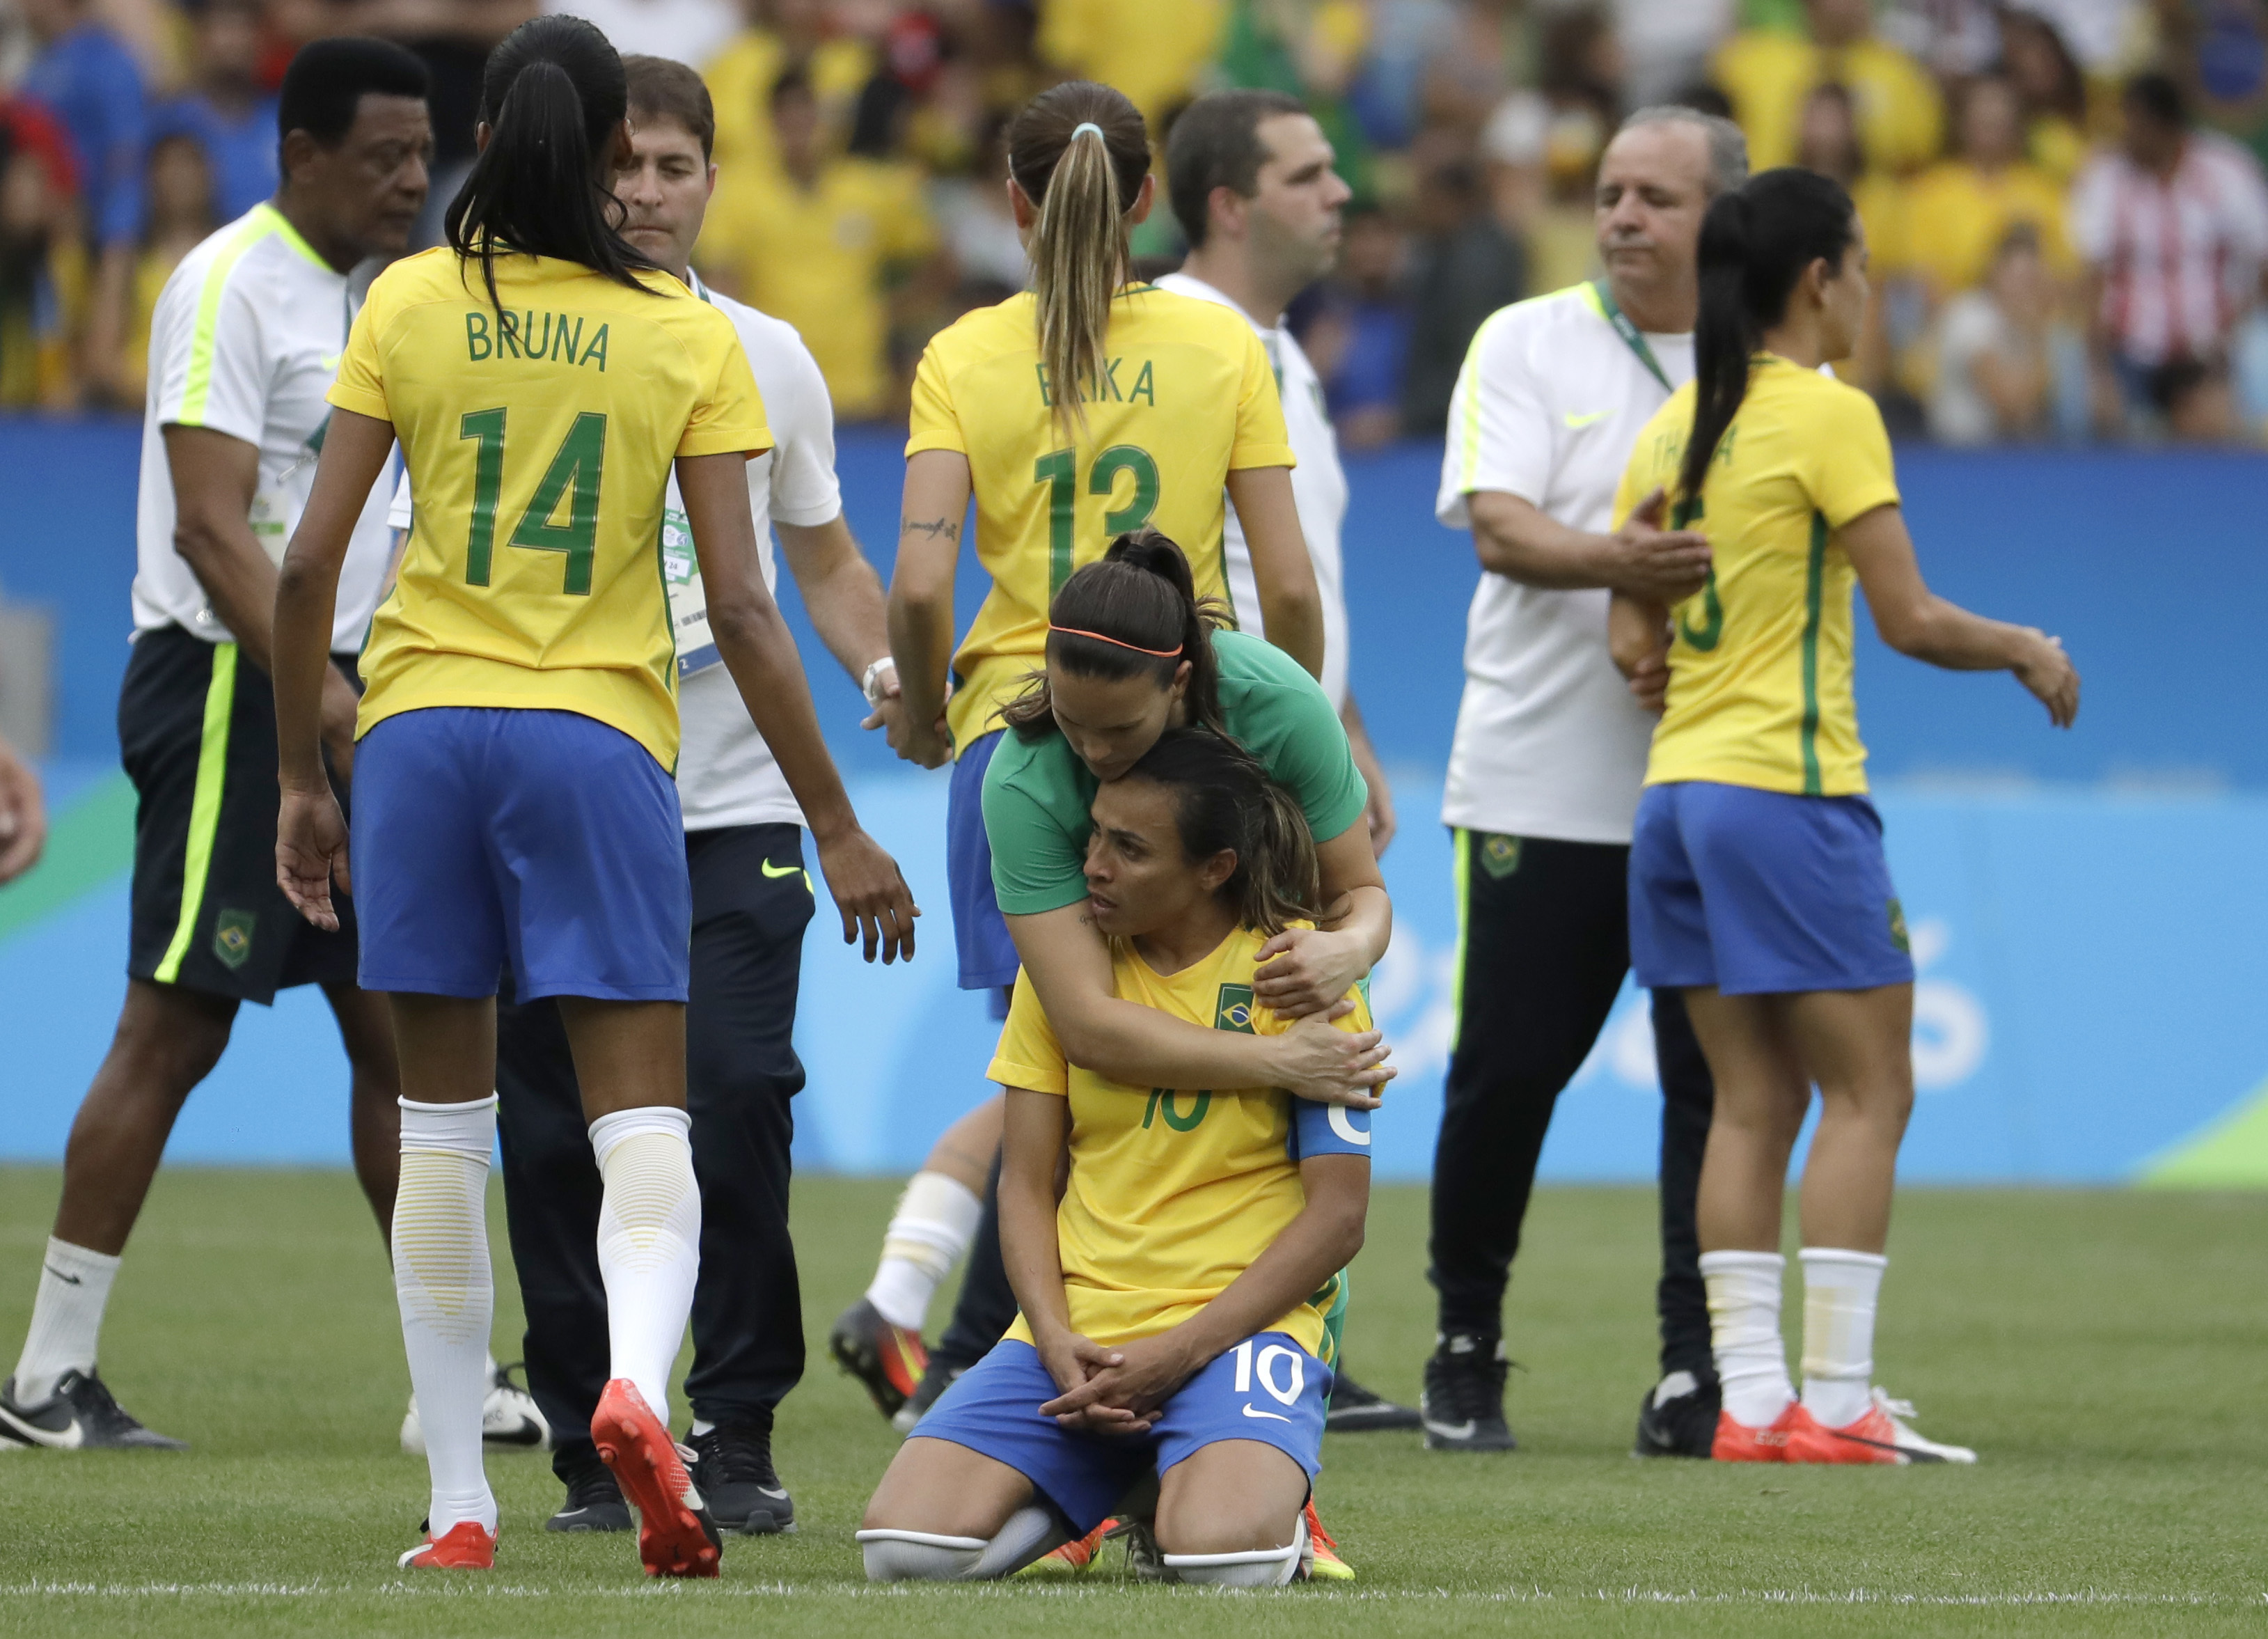 Brazil's Marta is comforted after the penalty kicks during a semi-final match of the women's Olympic football tournament between Brazil and Sweden at the Maracana stadium in Rio de Janeiro Tuesday Aug. 16, 2016. Sweden qualified for the final after beatin